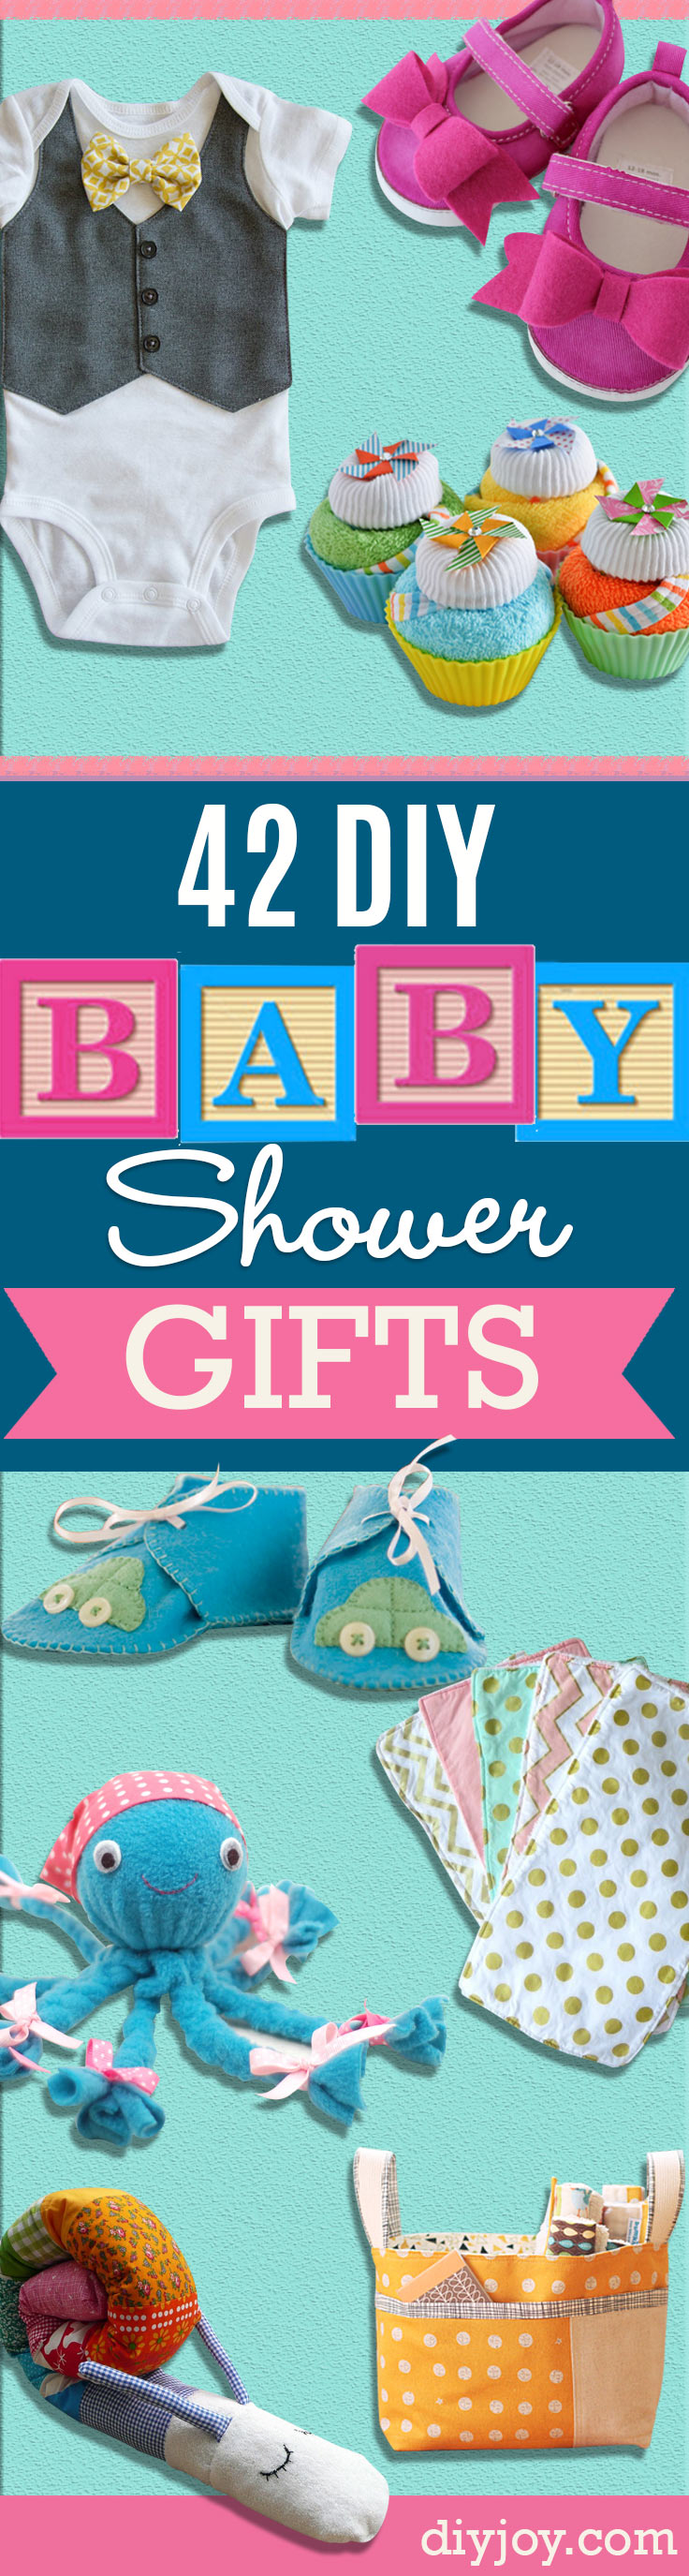 42 Fabulous DIY Baby Shower Gifts DIY Joy